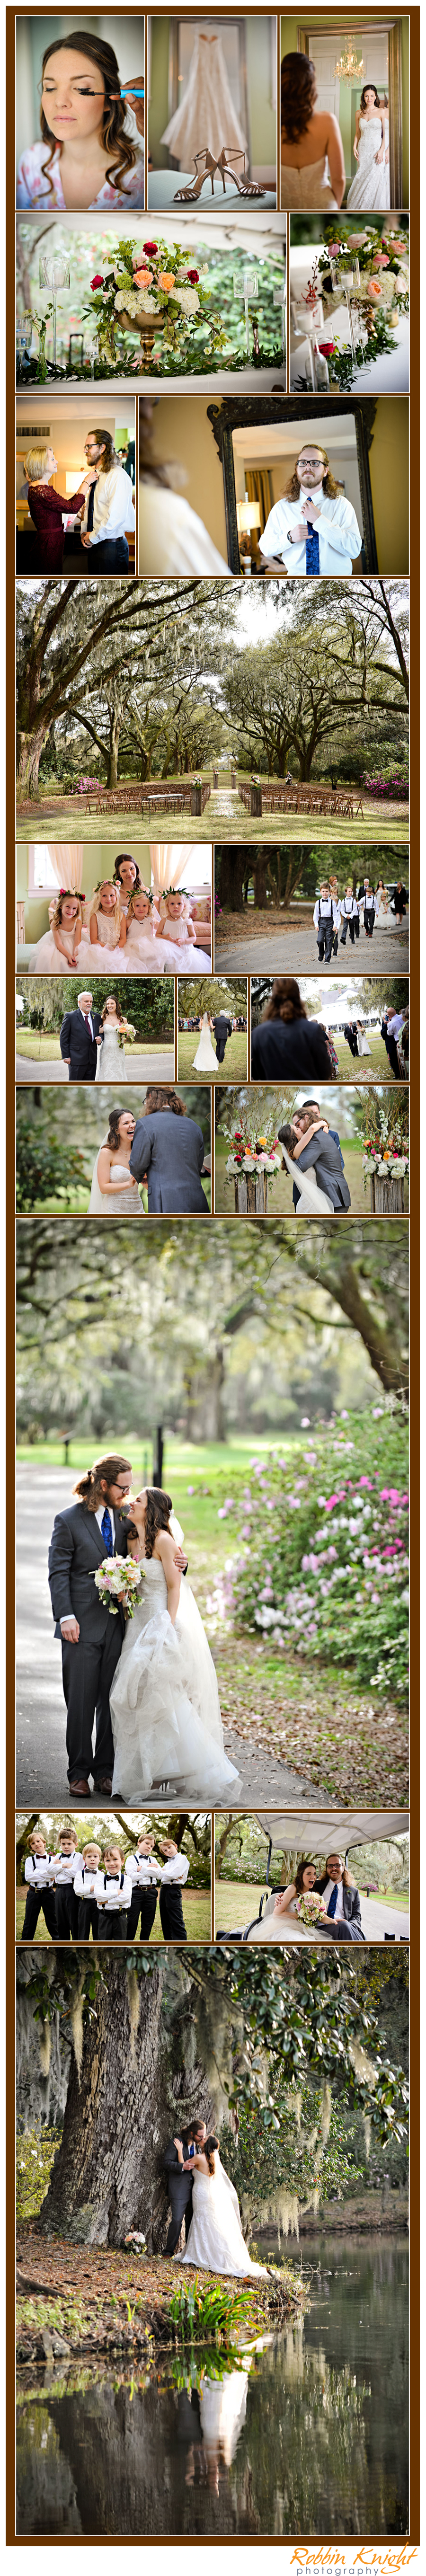 Charleston wedding at Charlestowne Landing Legare Waring House